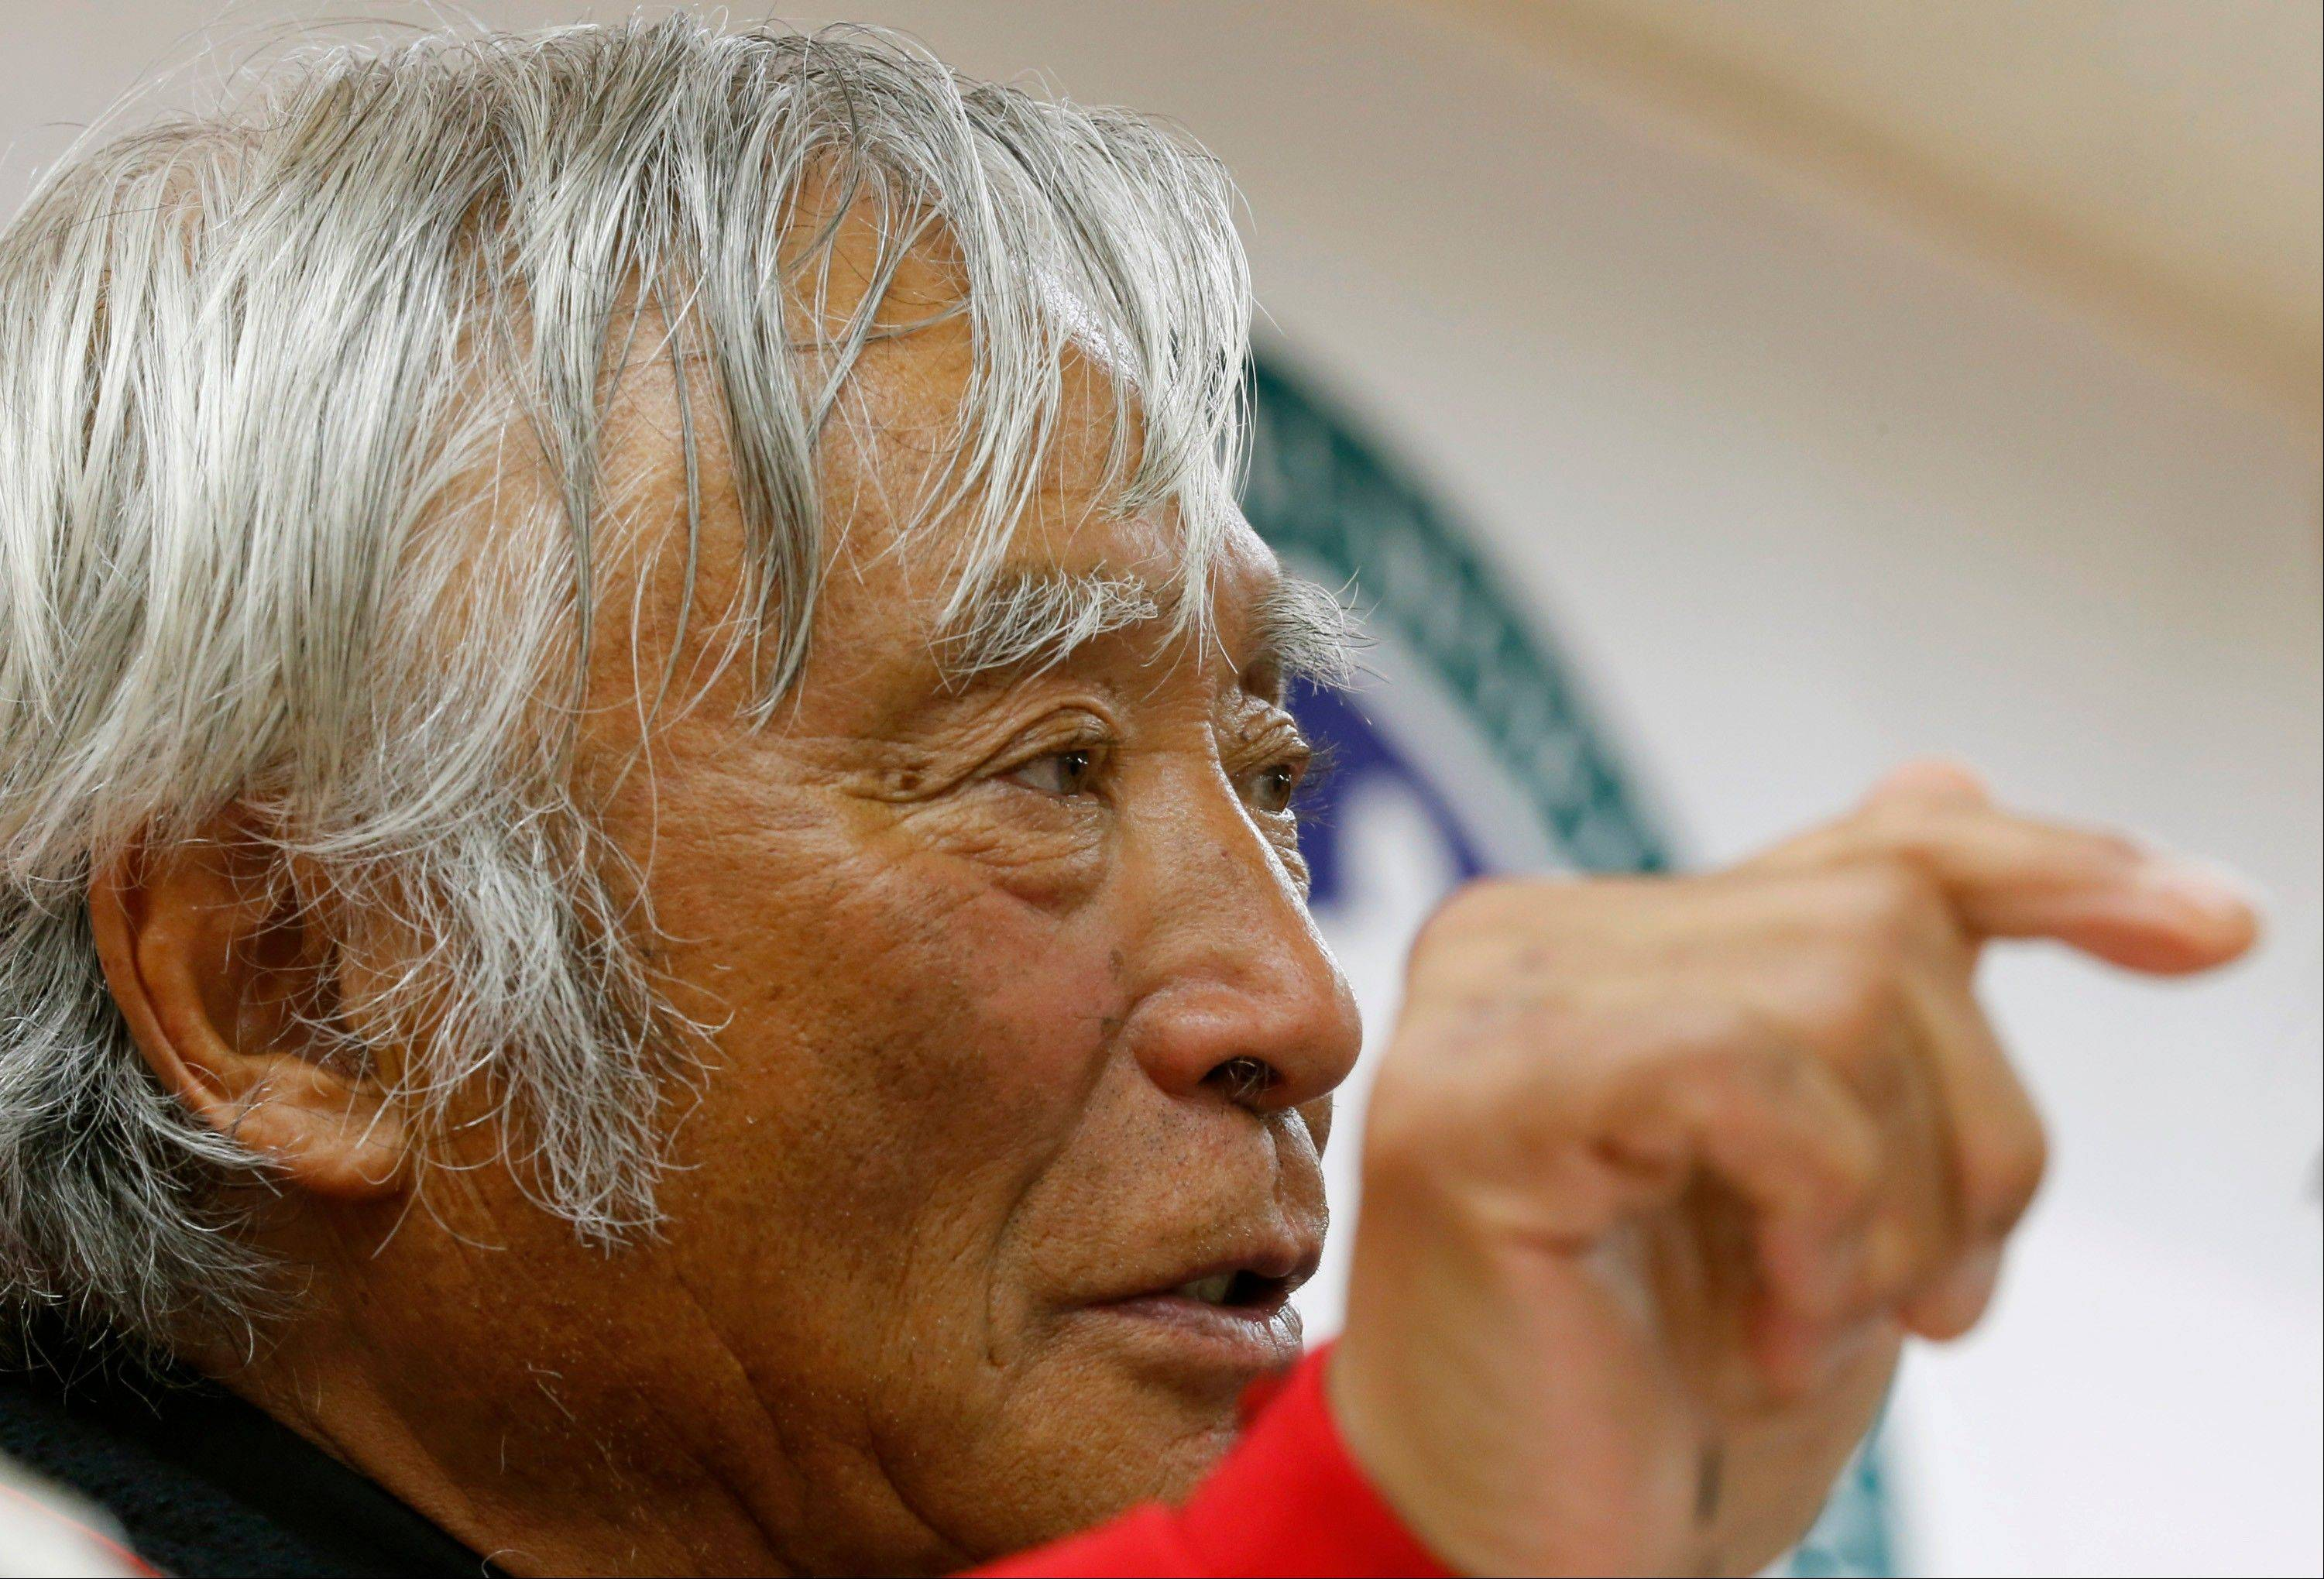 Yuichiro Miura, an 80-year-old Japanese mountaineer who became the oldest person to reach the top of Mount Everest last Thursday, says he almost died during his descent and does not plan another climb of the world�s highest peak, though he hopes to do plenty of skiing.